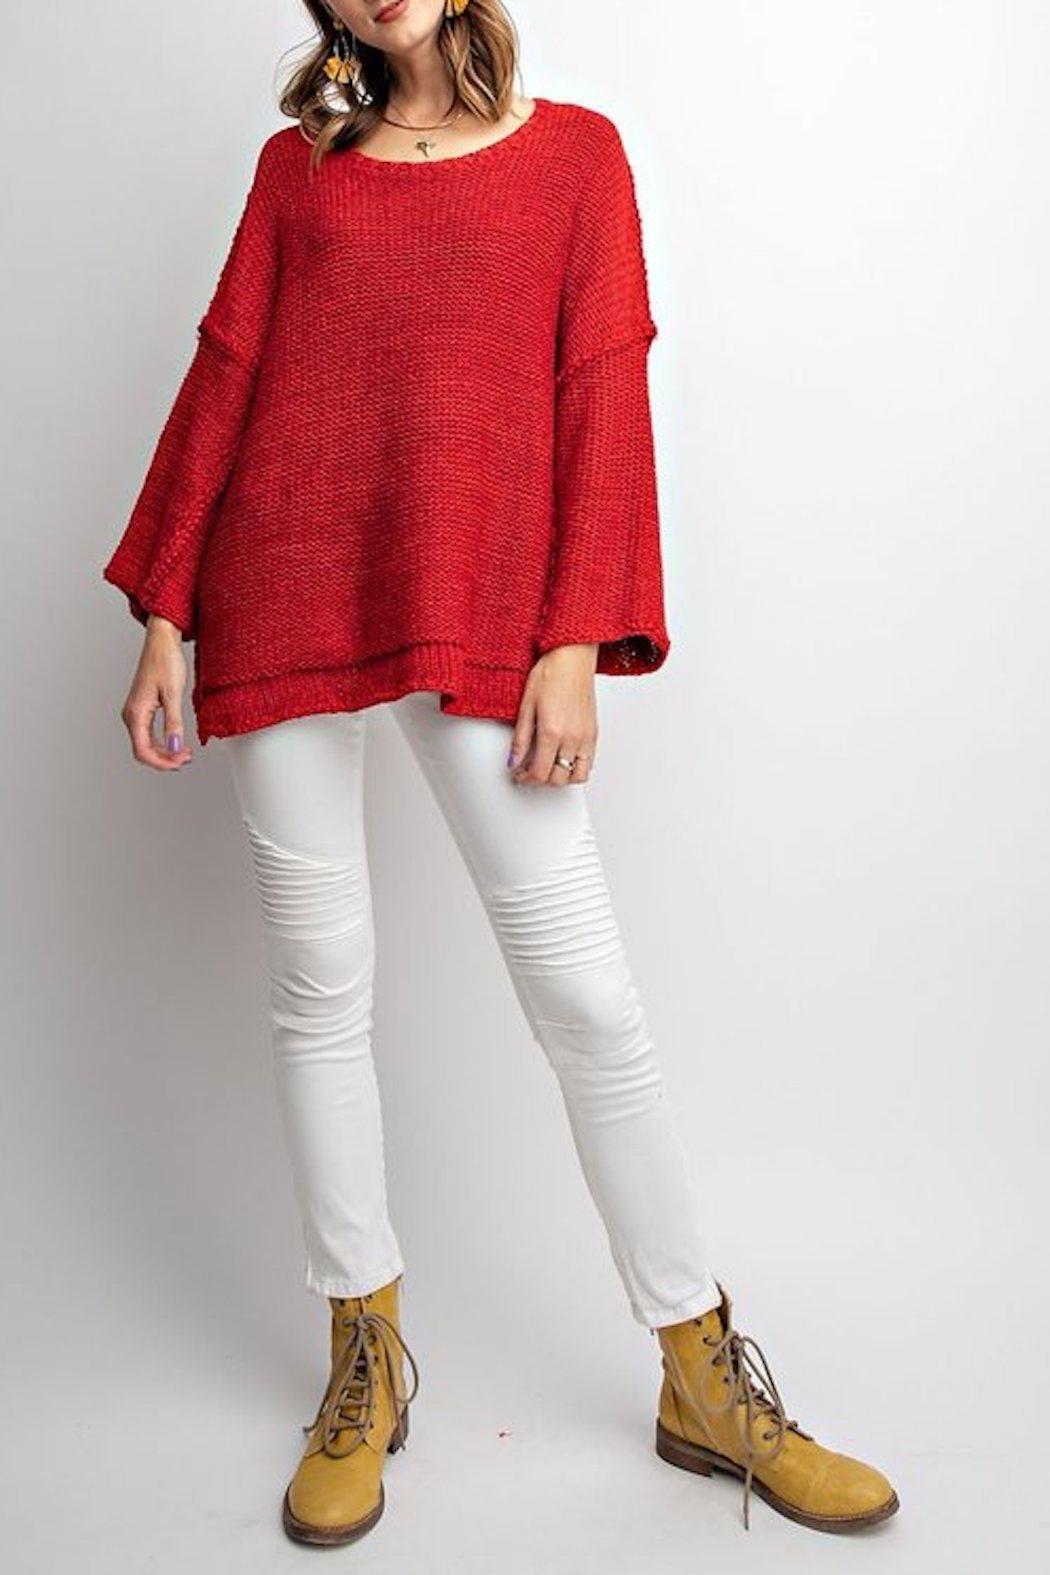 easel Red Chunky Sweater - Main Image